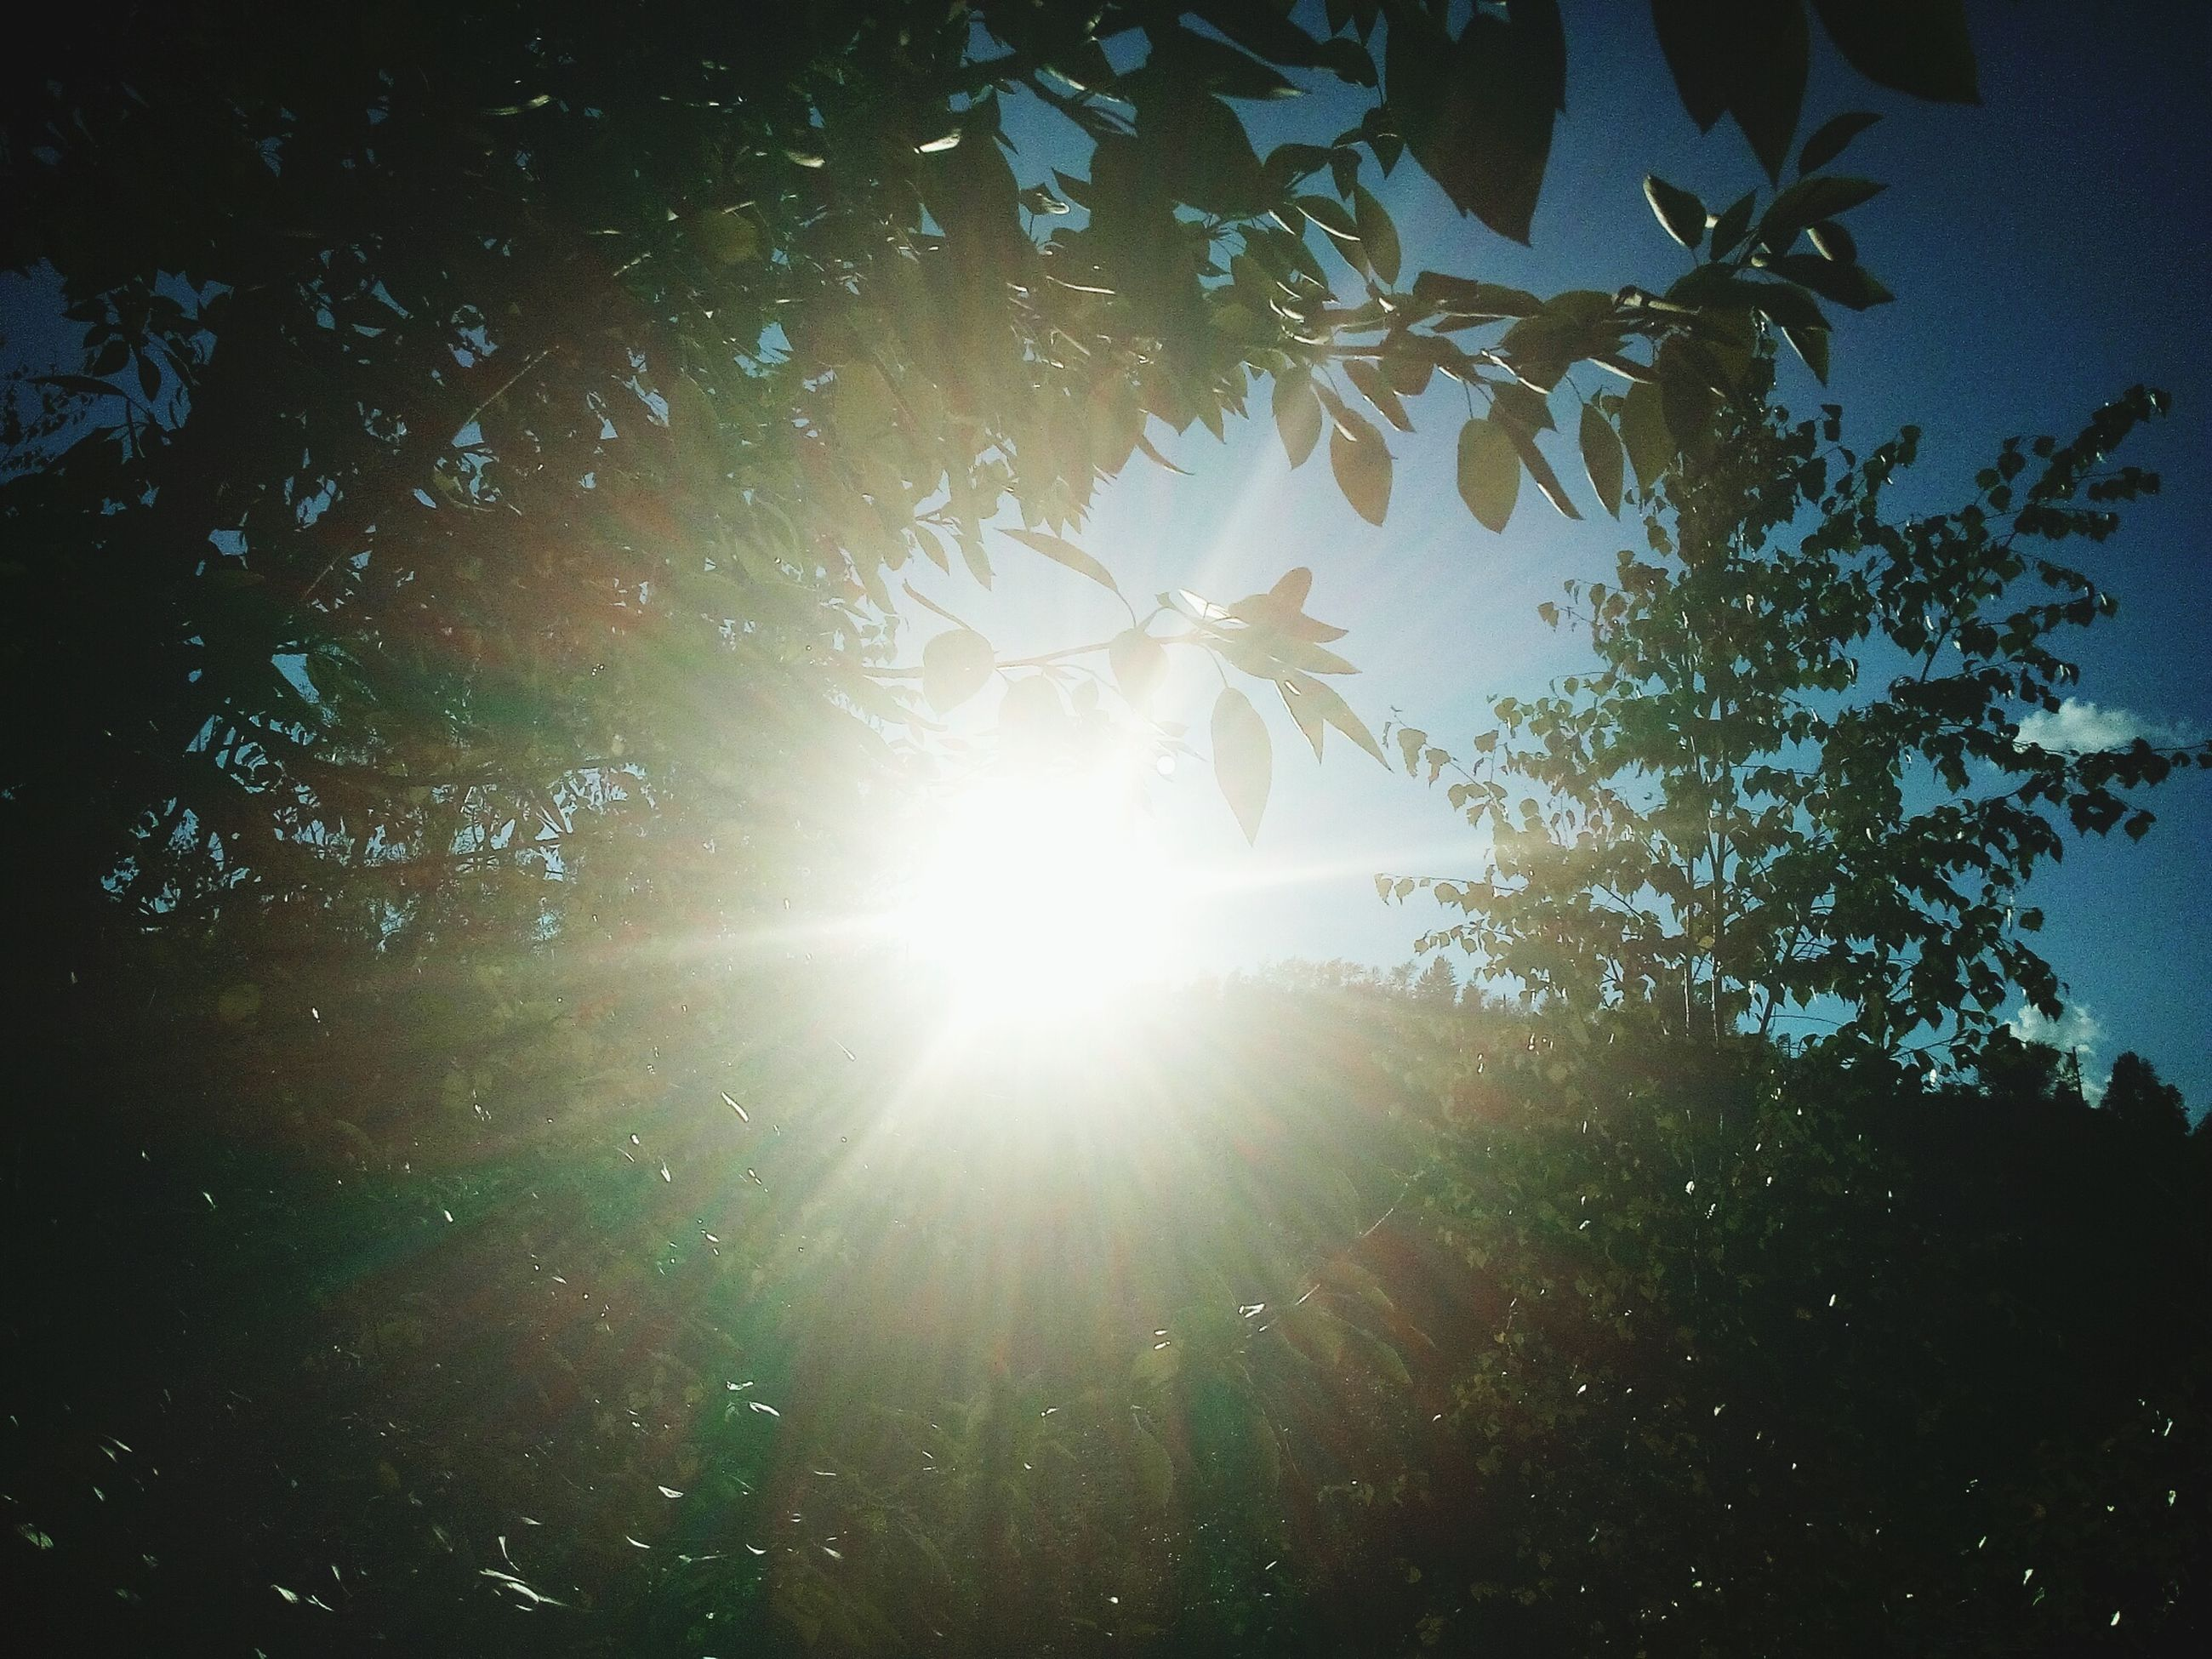 sun, sunbeam, tree, sunlight, lens flare, low angle view, tranquility, beauty in nature, nature, growth, sky, tranquil scene, bright, scenics, sunny, back lit, no people, outdoors, idyllic, day